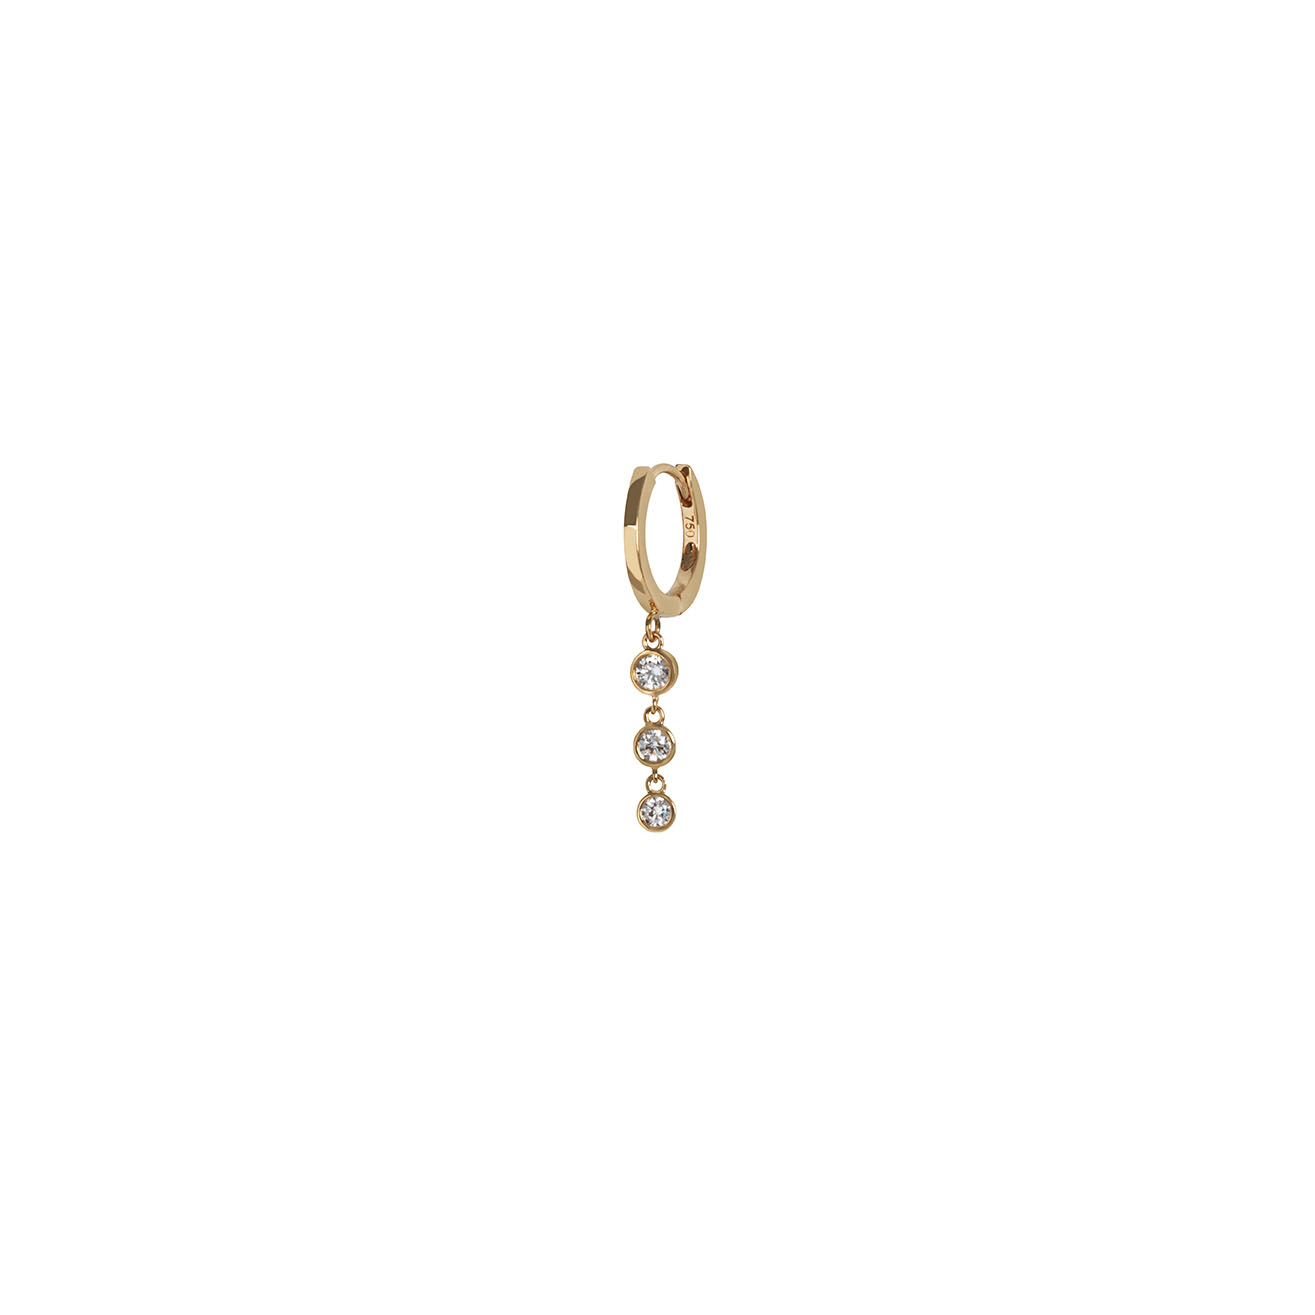 Gold creole earring with 3 falling diamonds